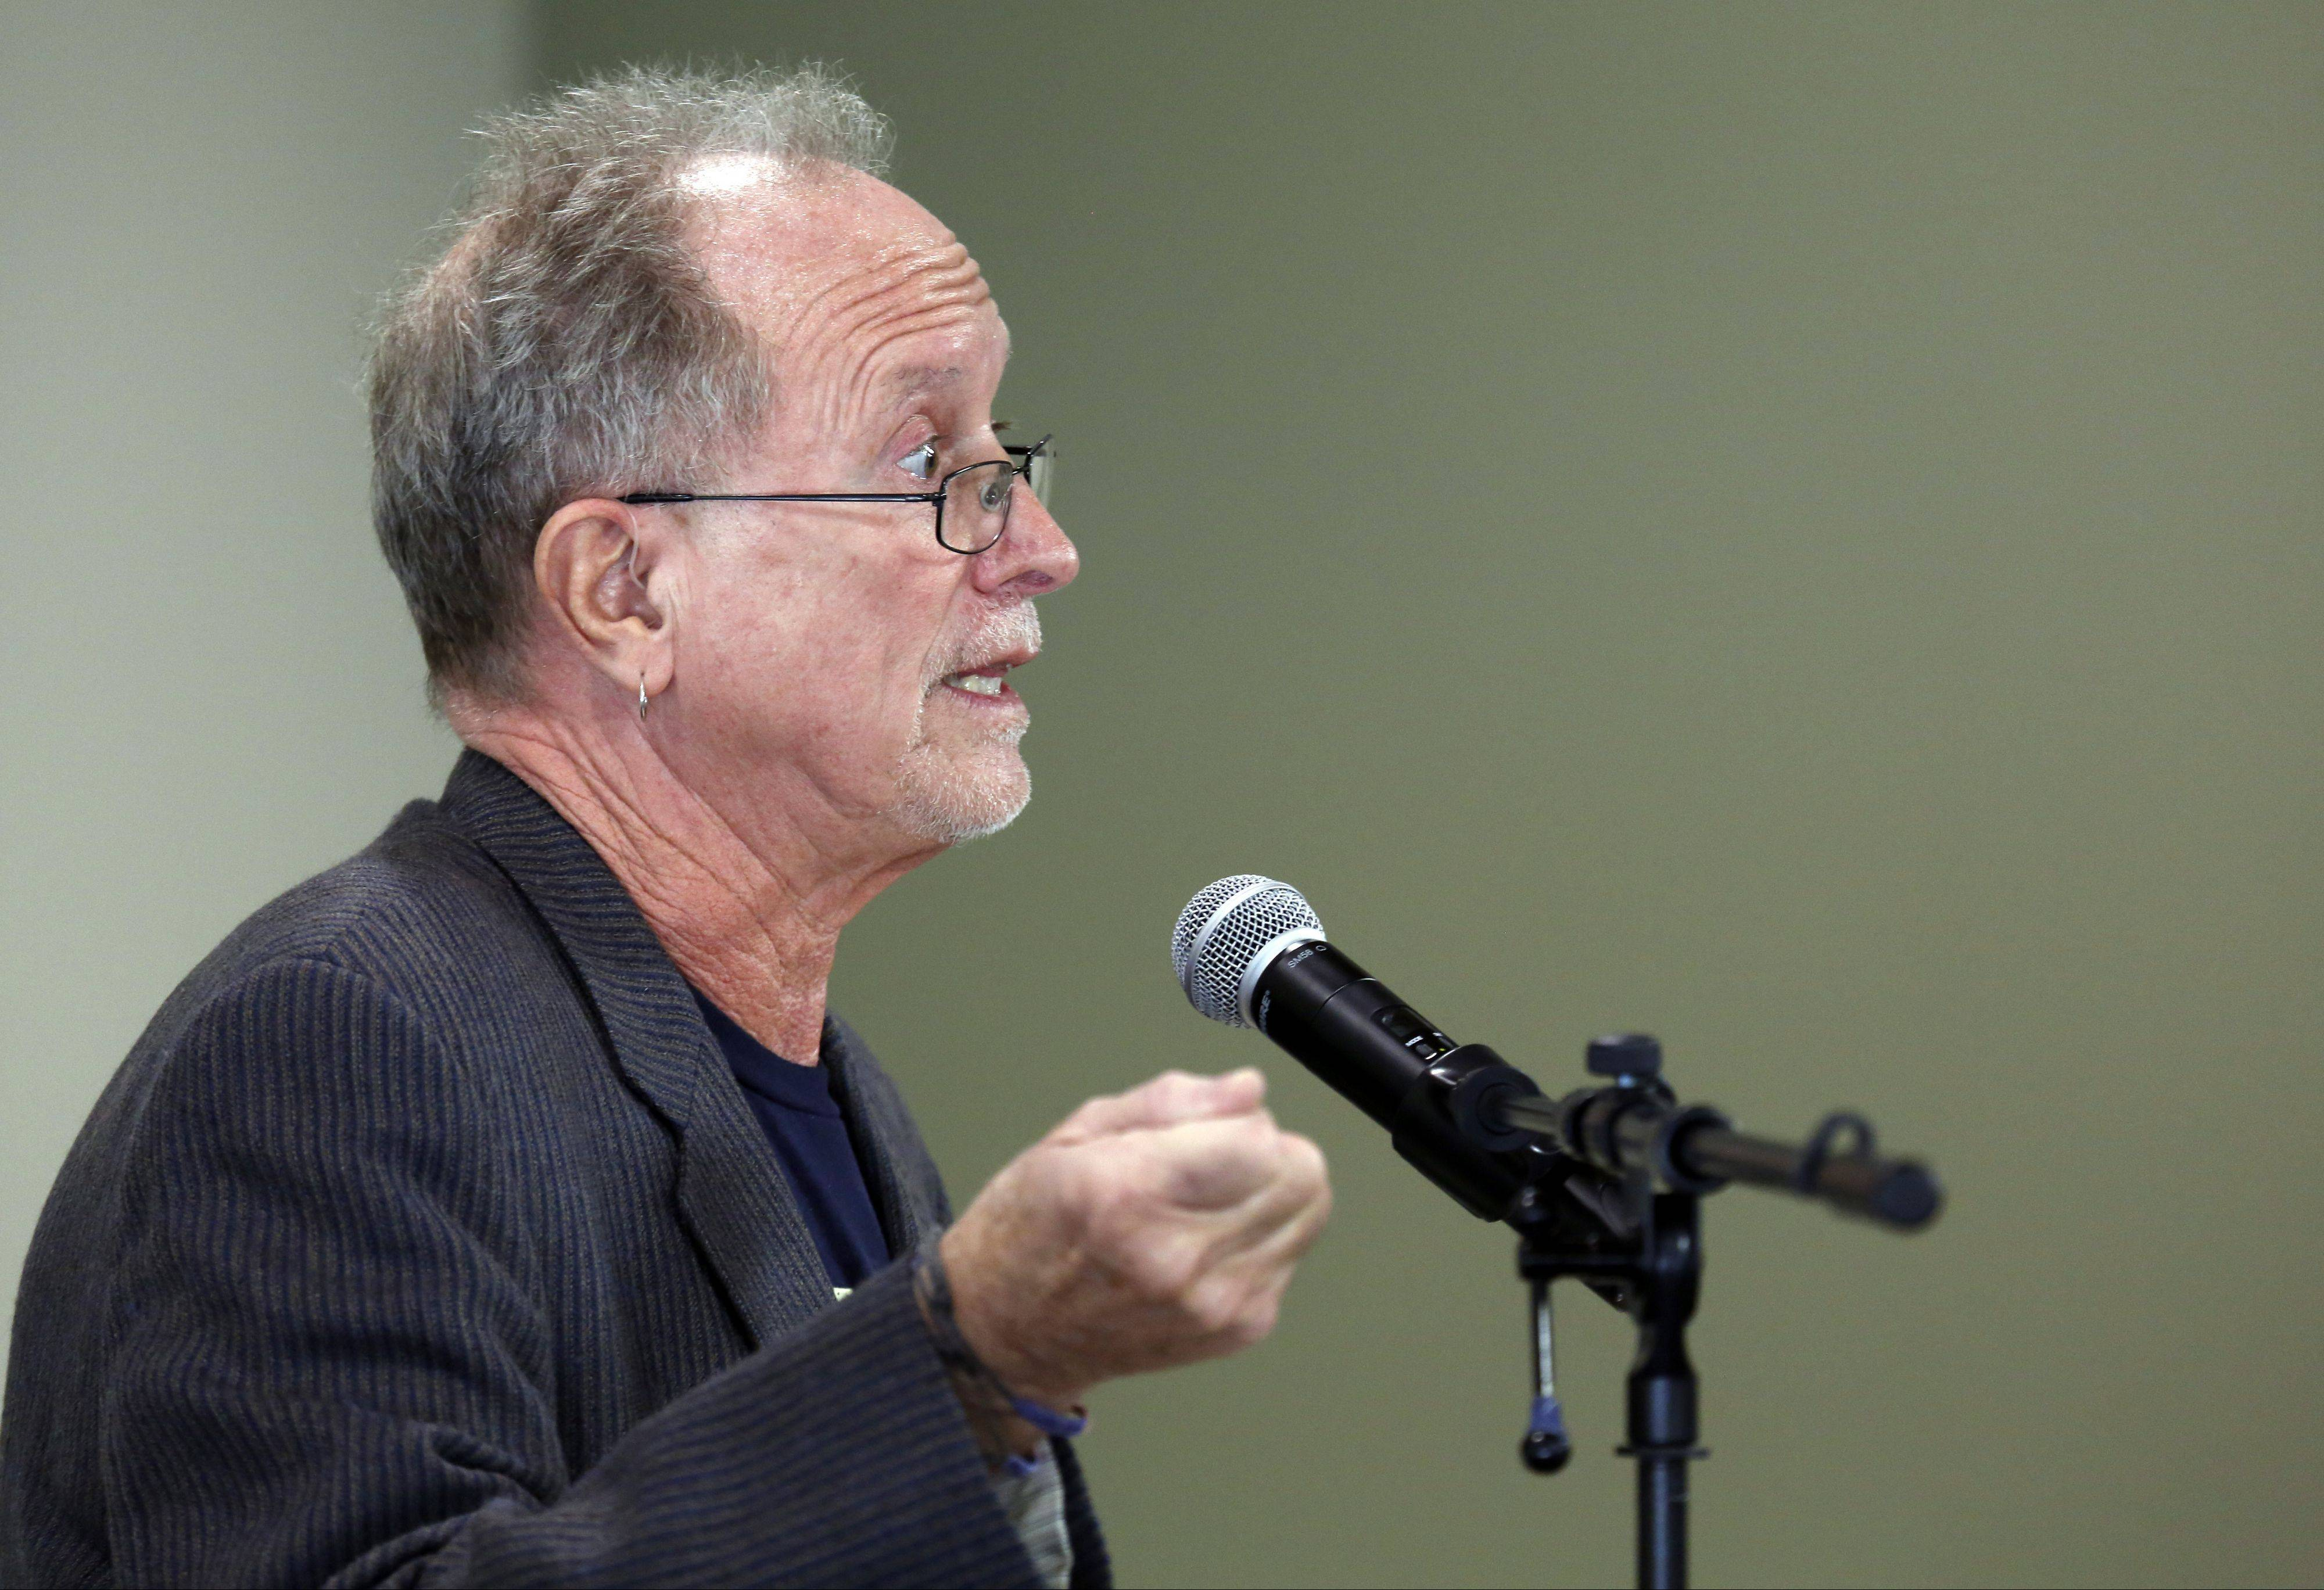 Ayers talk at ECC draws applause, some protest